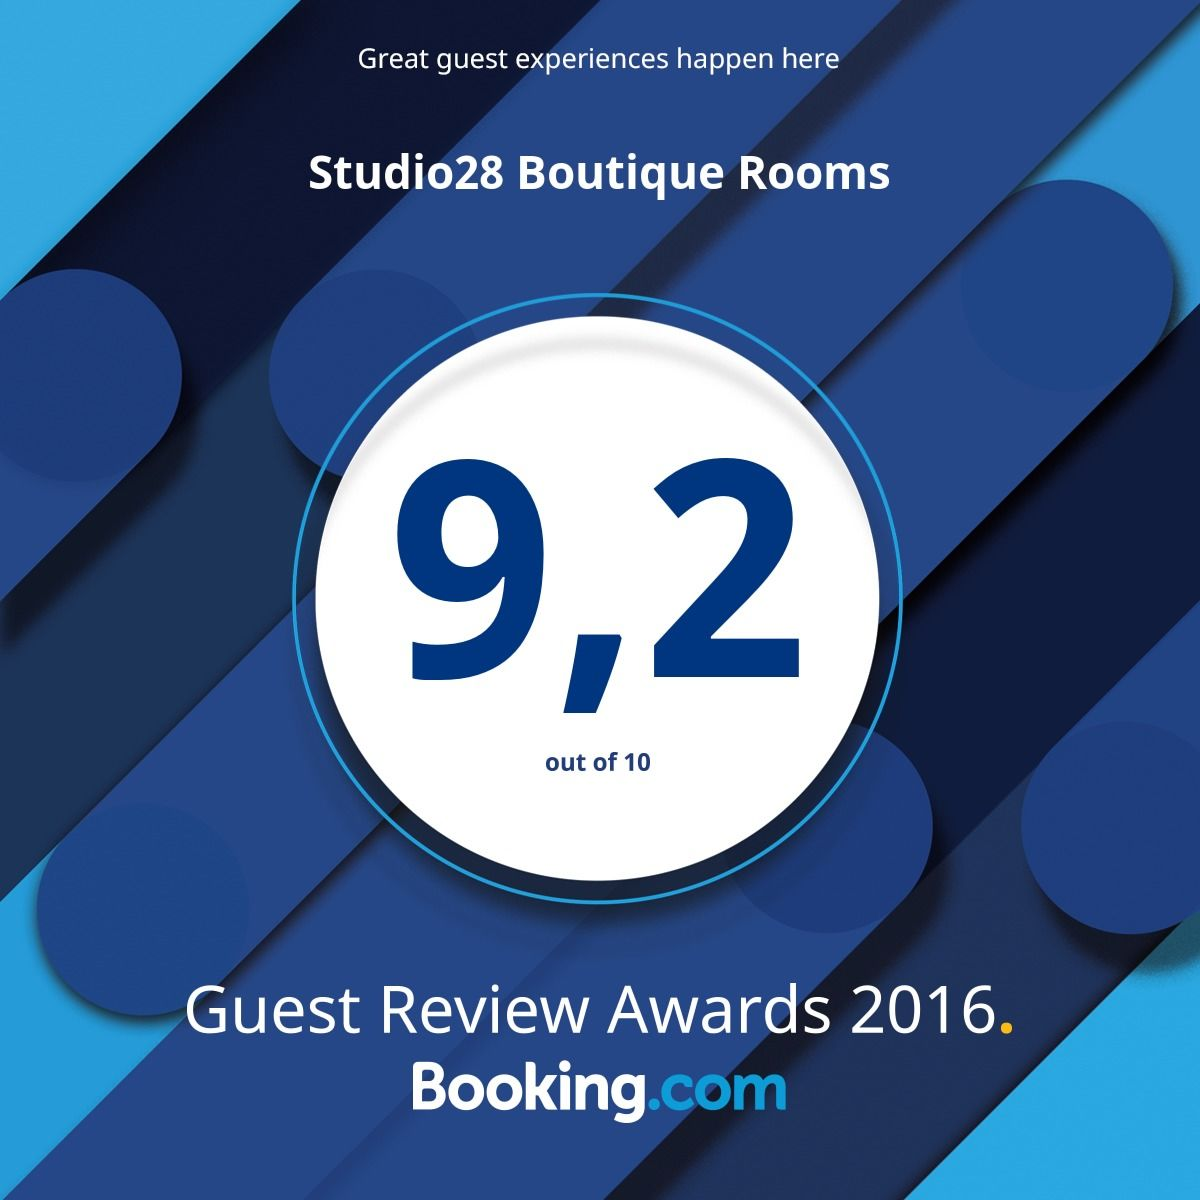 Studio28 Boutique Rooms Booking.com Guest Review Award 2016